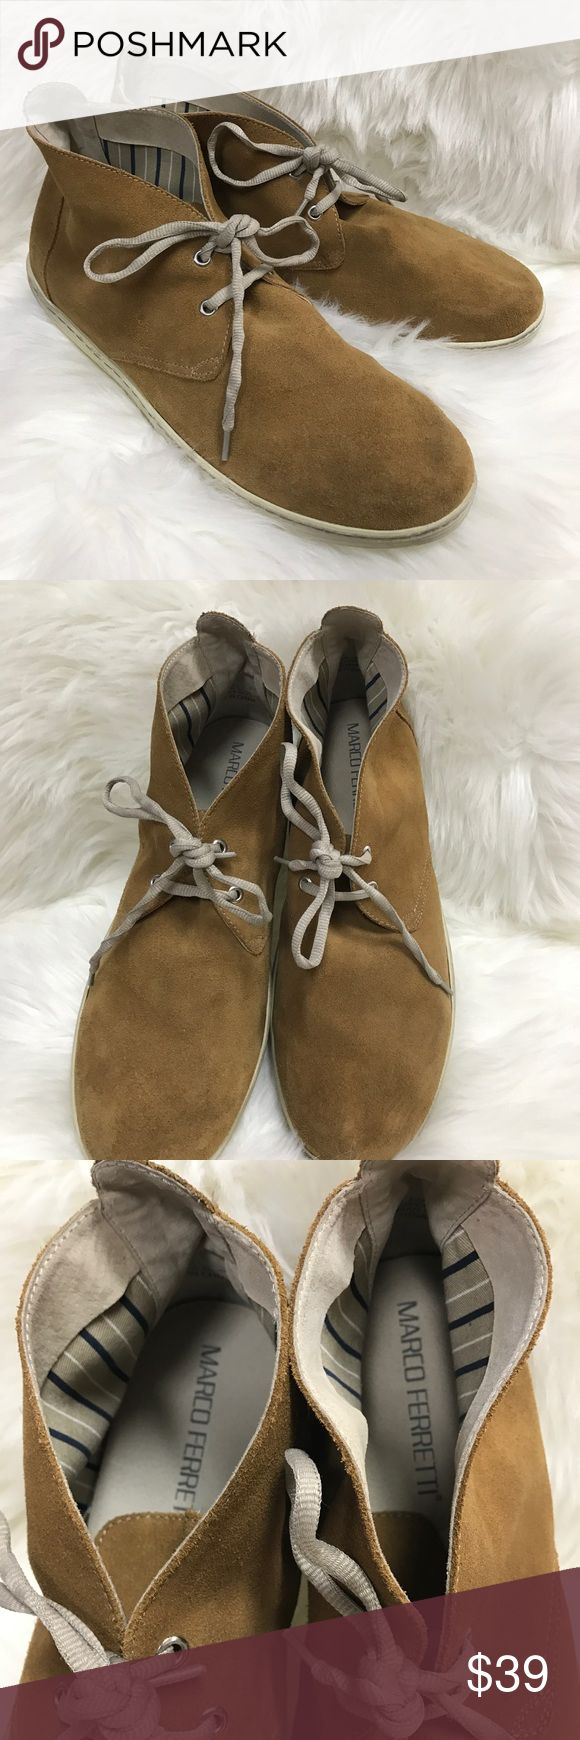 Marco Ferretti Brown Suede Chukka Ankle Boot This brown, lace suede ankle boots is in very good pre-owned condition. Please refer to pictures for better descriptions. Marco Ferretti Shoes Chukka Boots